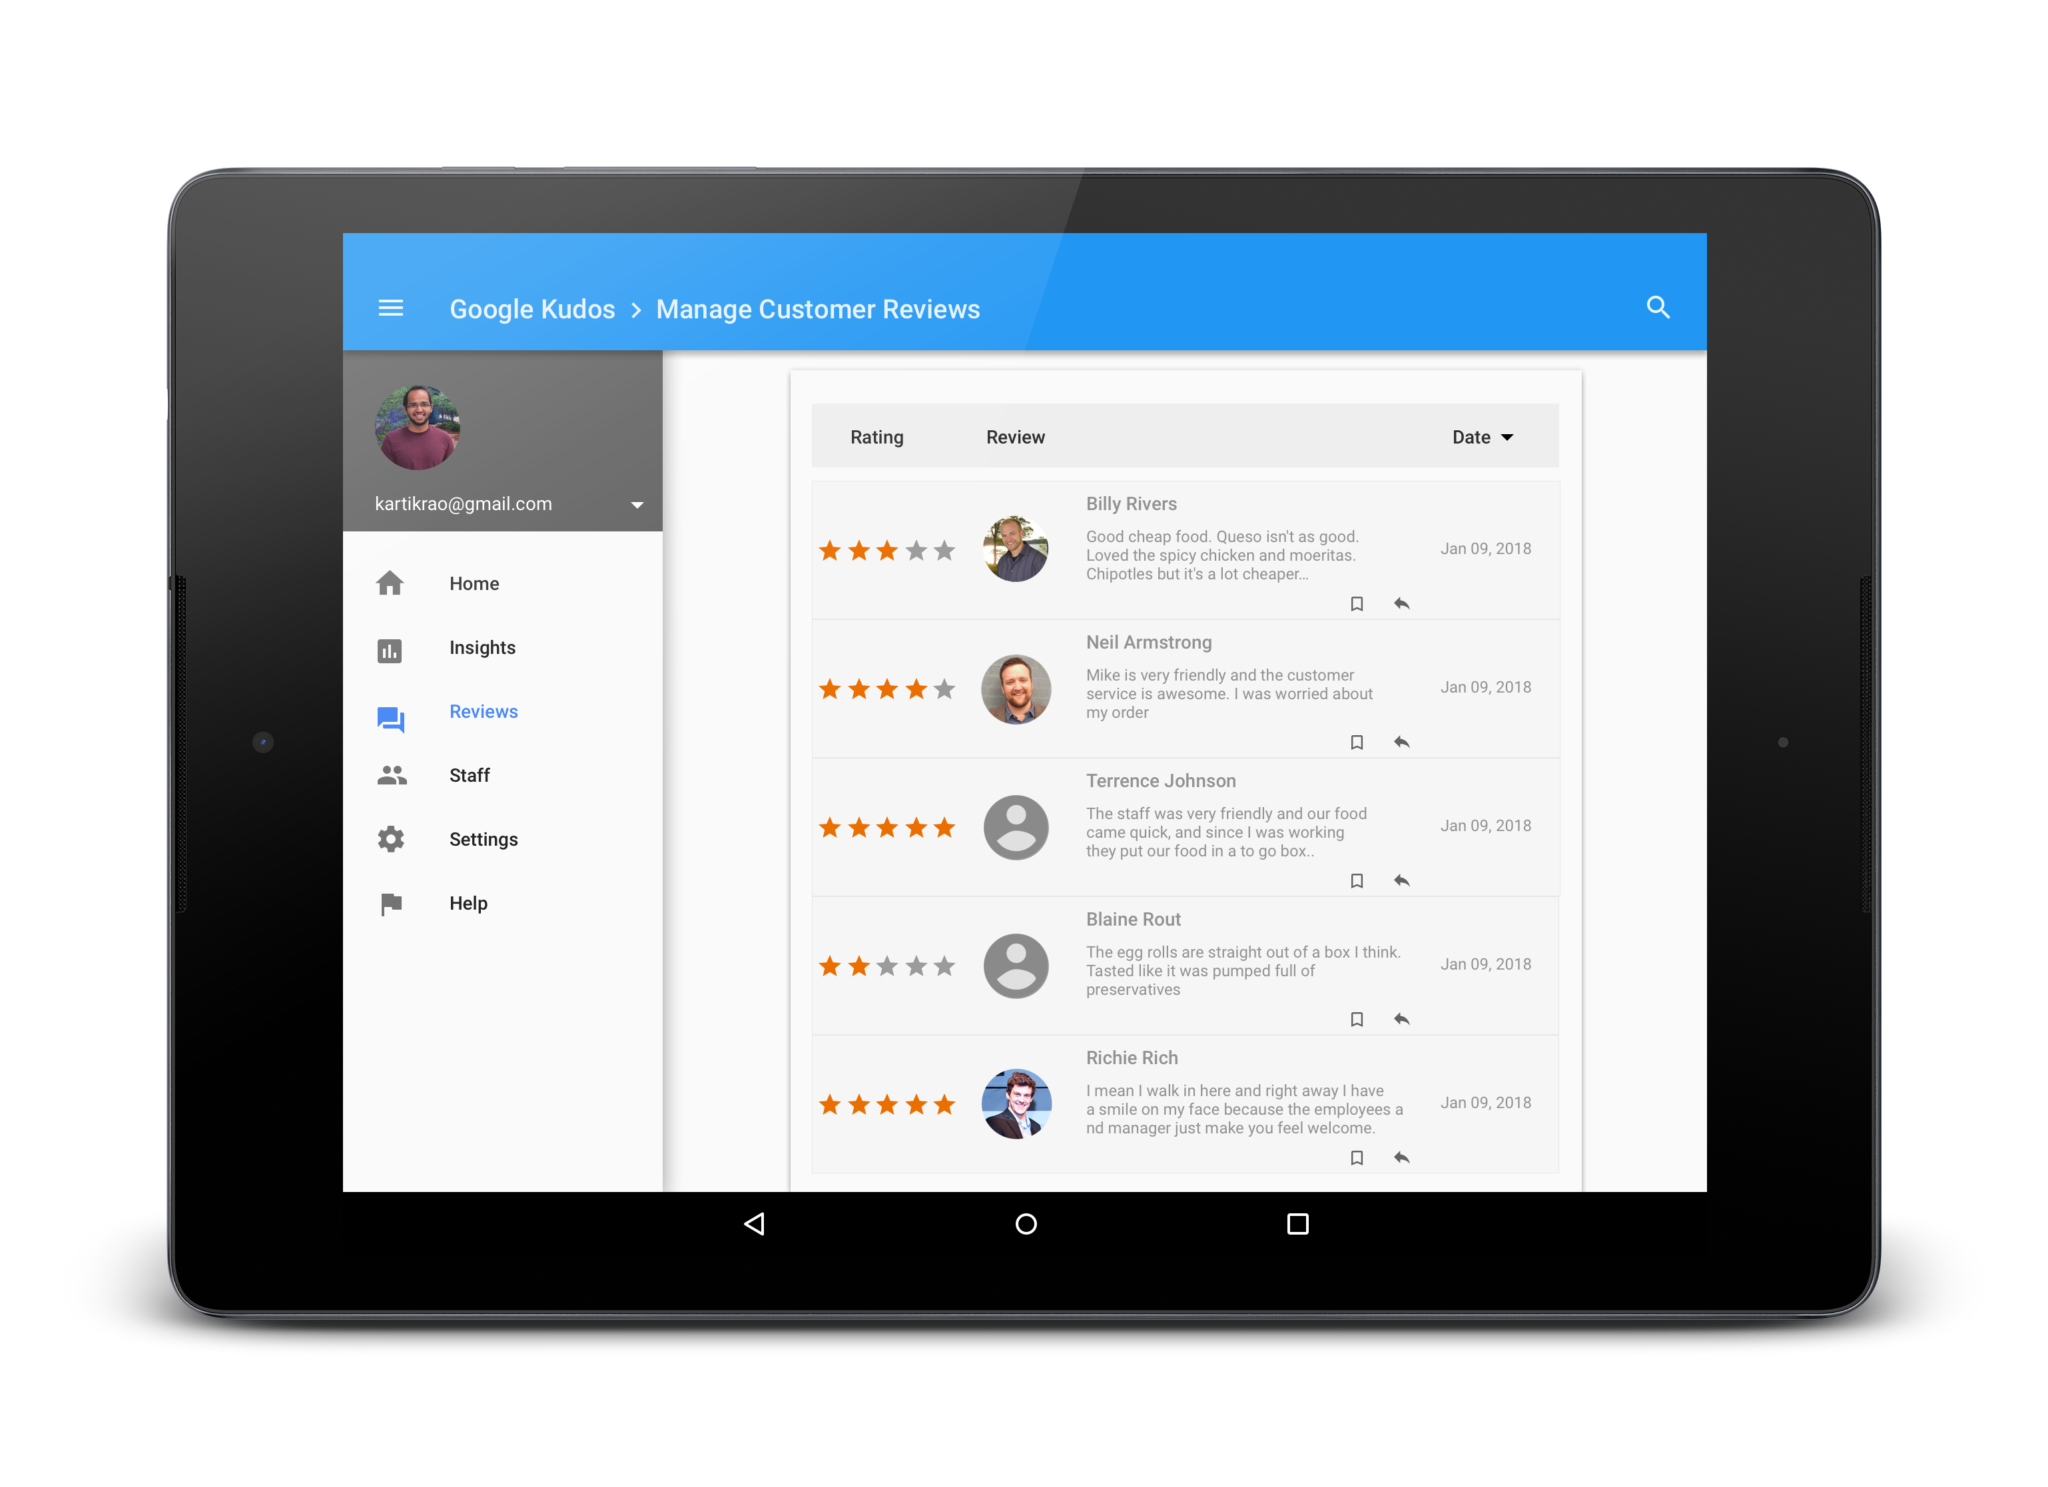 Kudos-Manager-Insights-Tablet